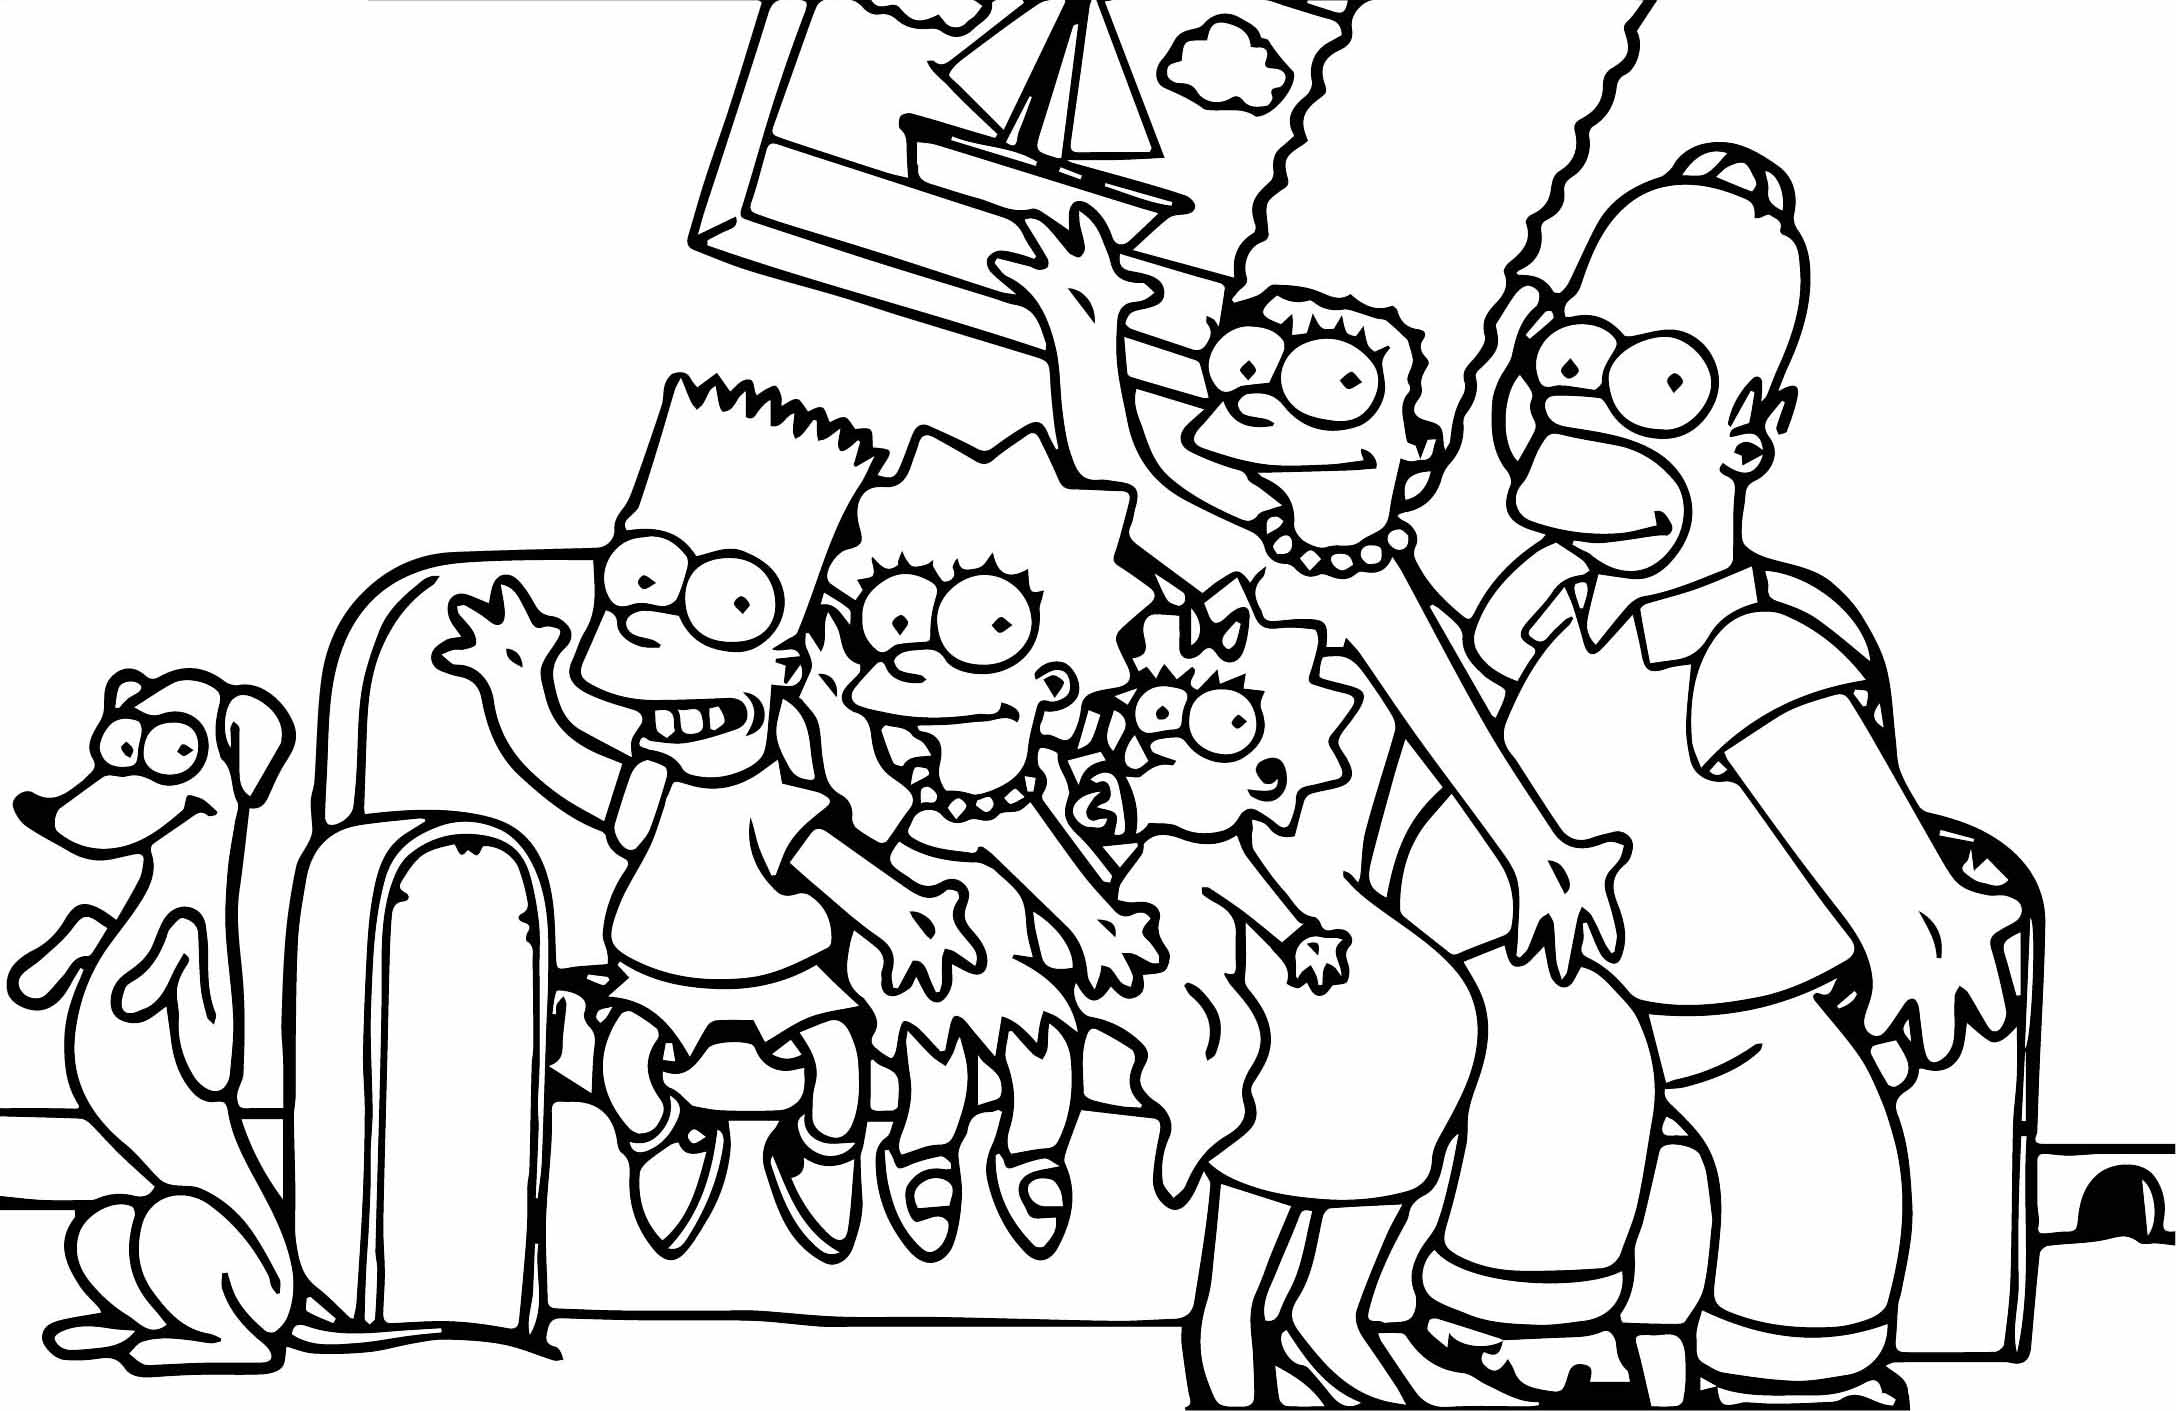 The Simpsons Coloring Page 170   Wecoloringpage.com